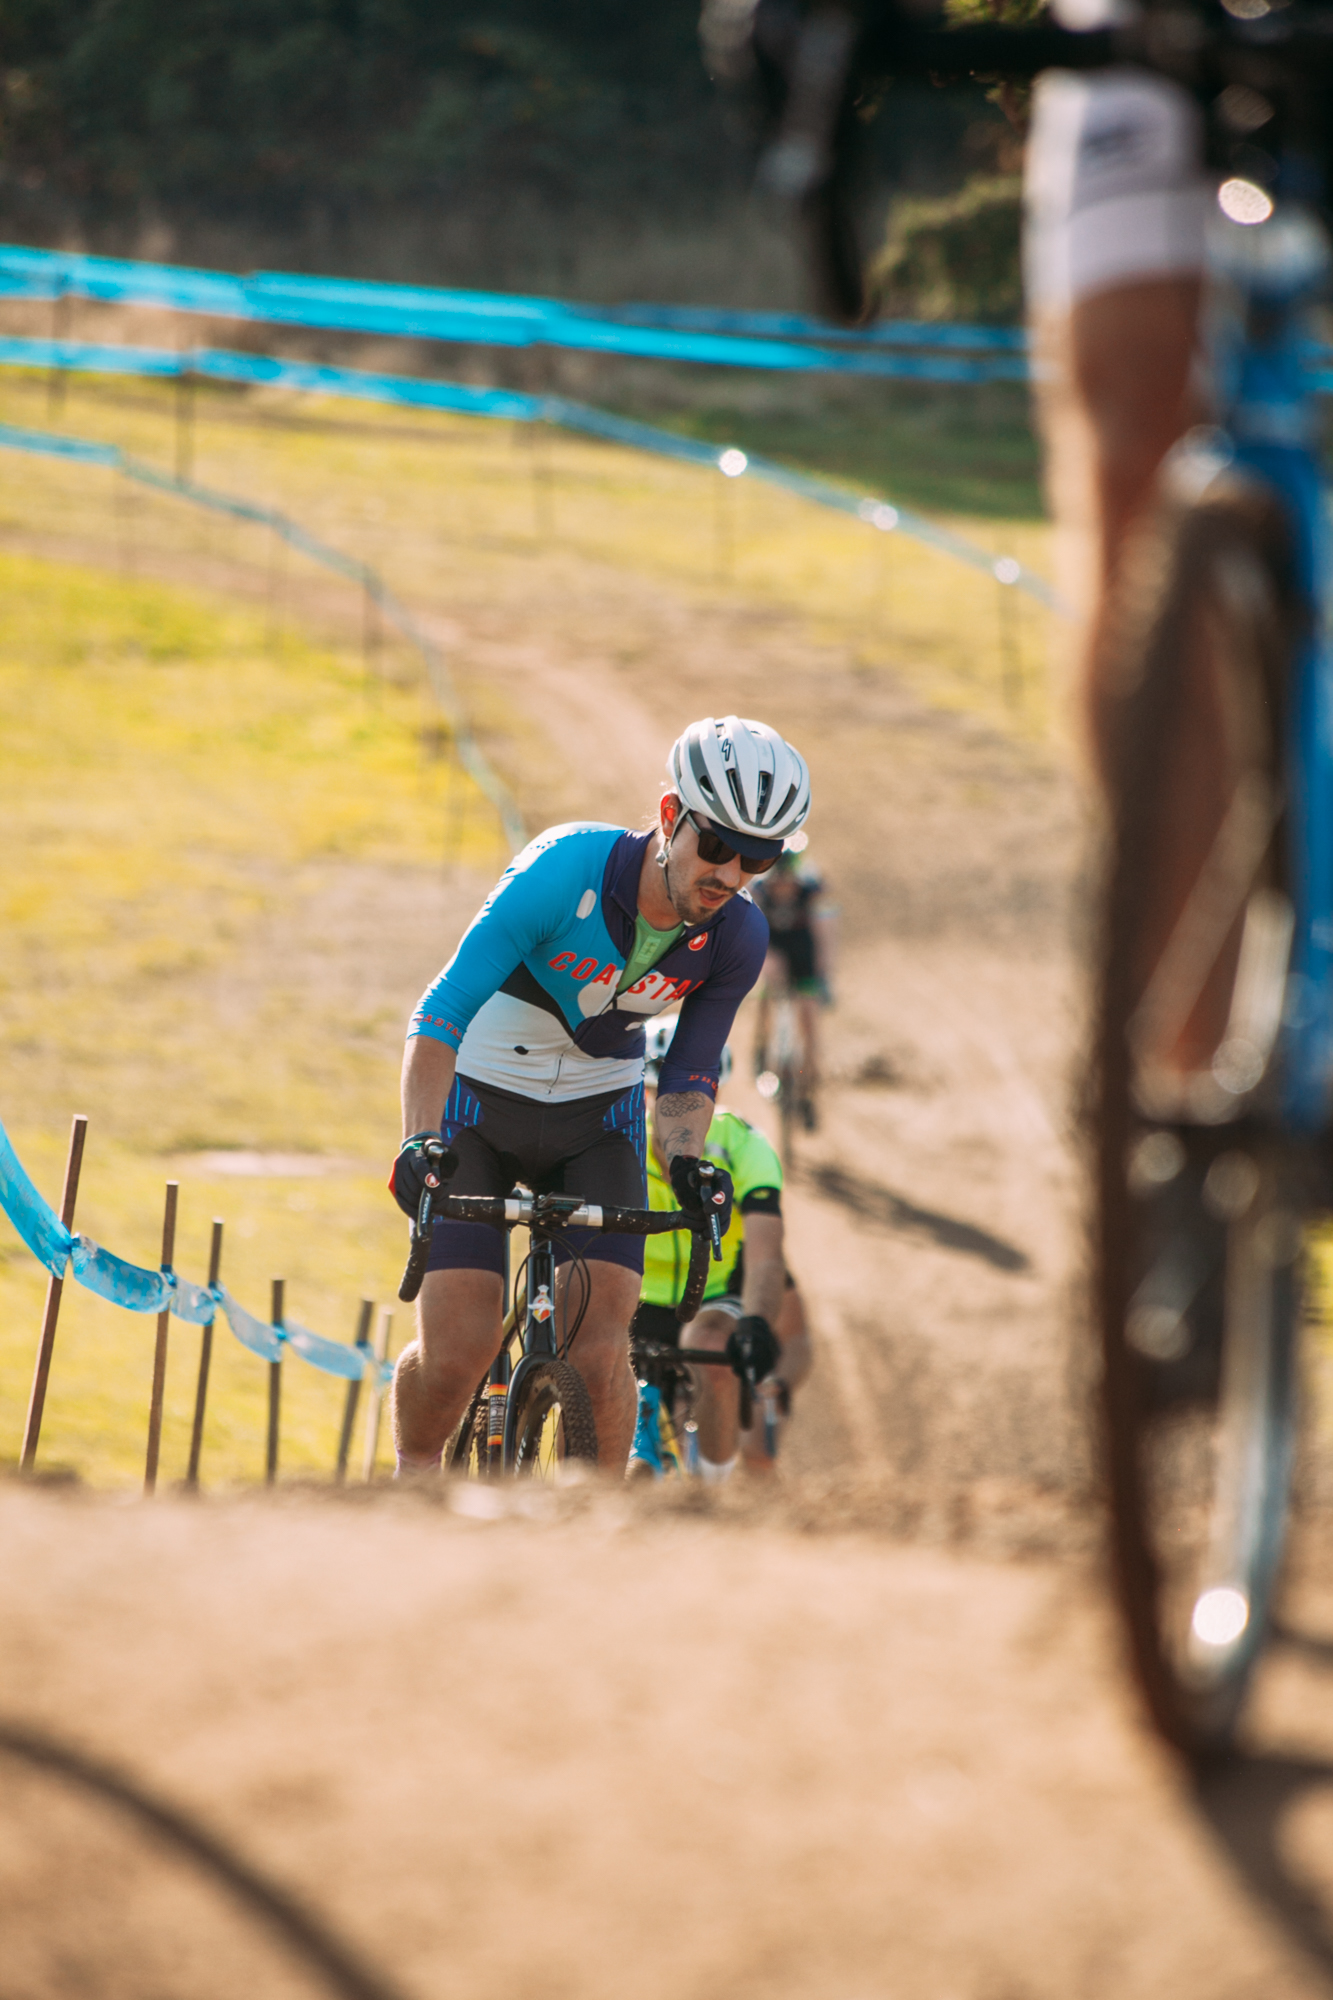 Cyclocross18_CCCX_RainierHS-230-mettlecycling.jpg